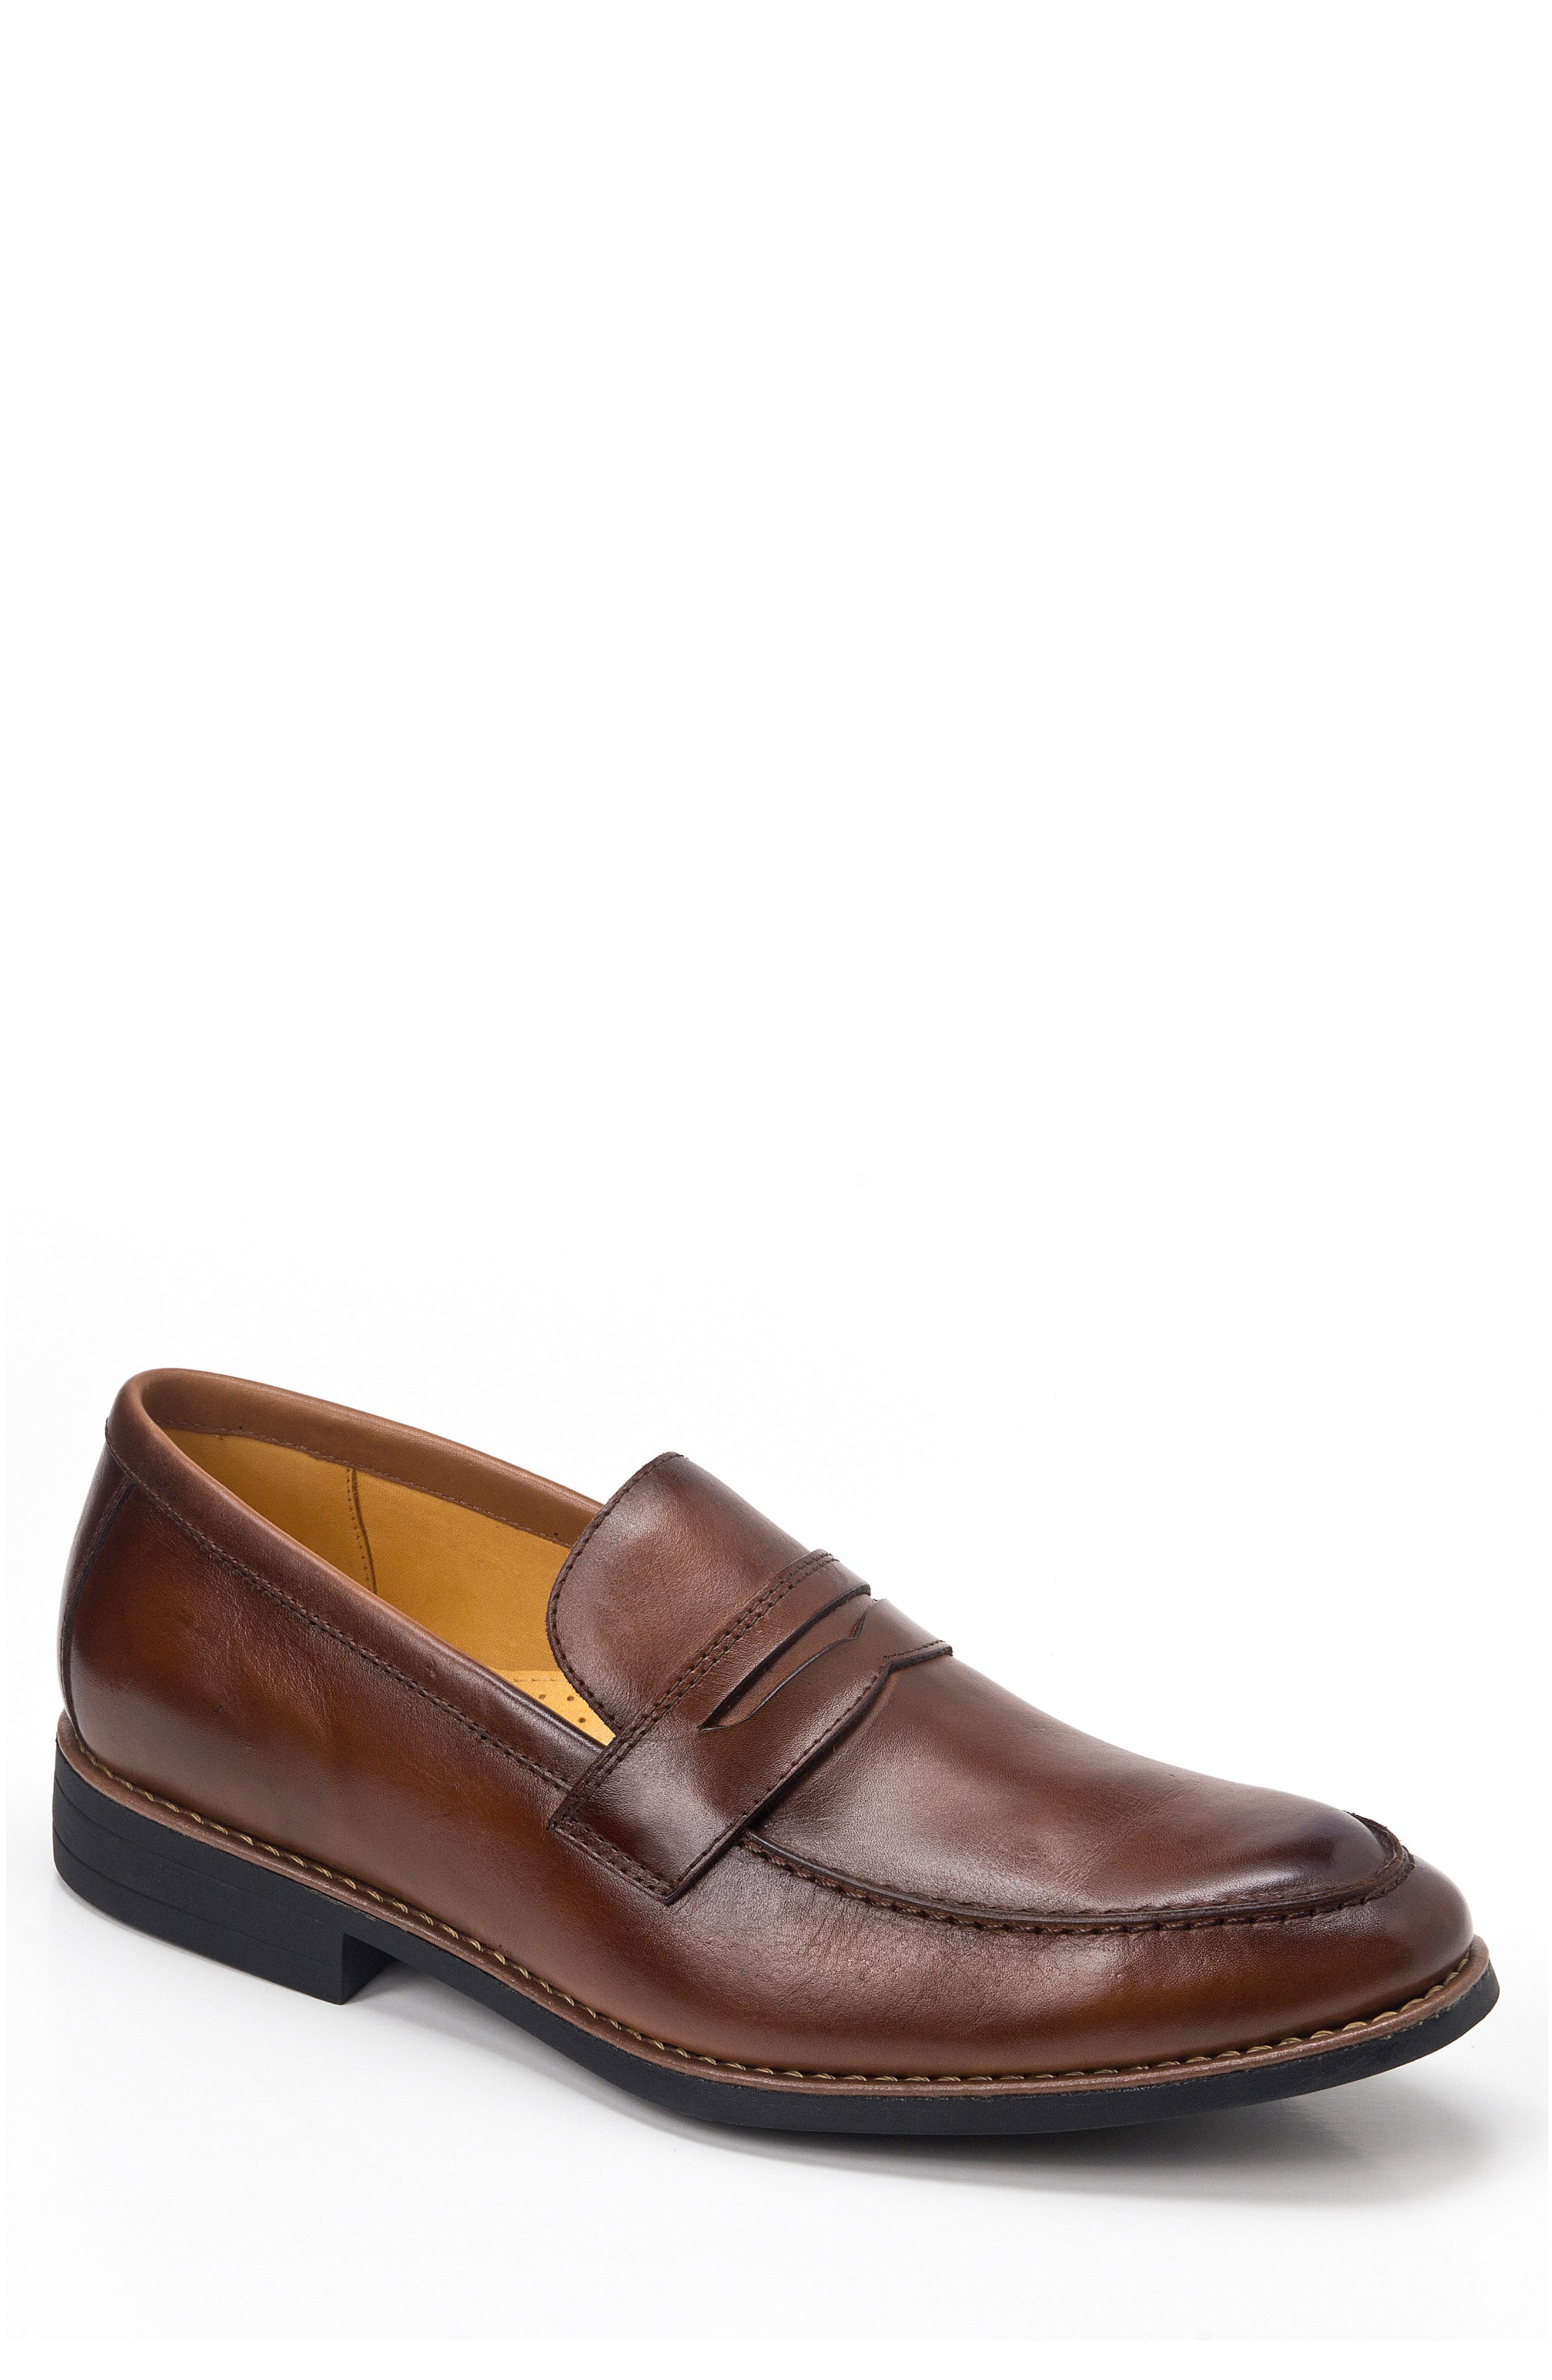 Mundo Penny Loafer,                             Main thumbnail 1, color,                             BROWN LEATHER